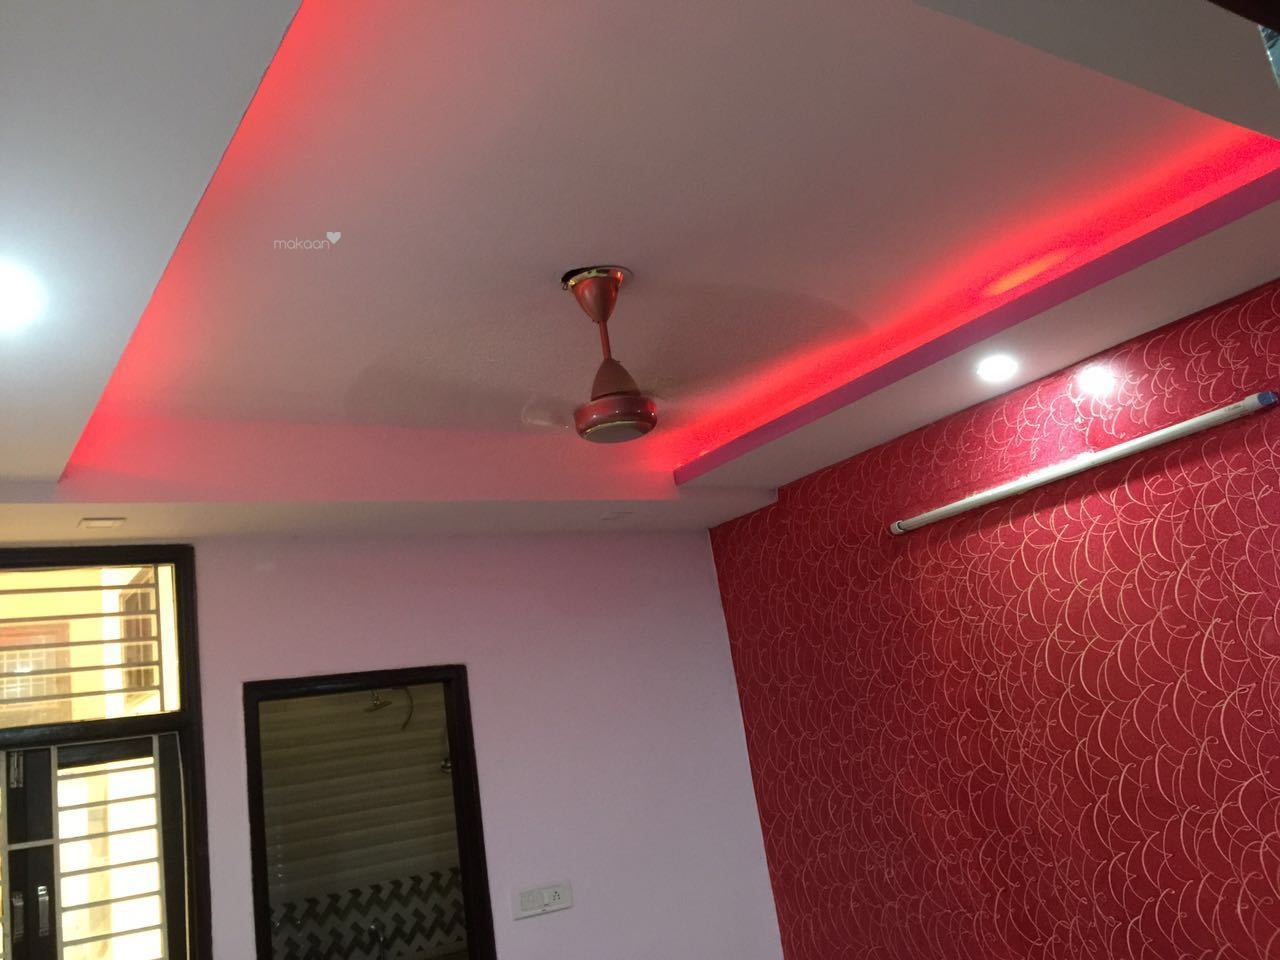 945 sq ft 3BHK 3BHK+2T (945 sq ft) + Servant Room Property By Partap Properties In Project, Uttam Nagar